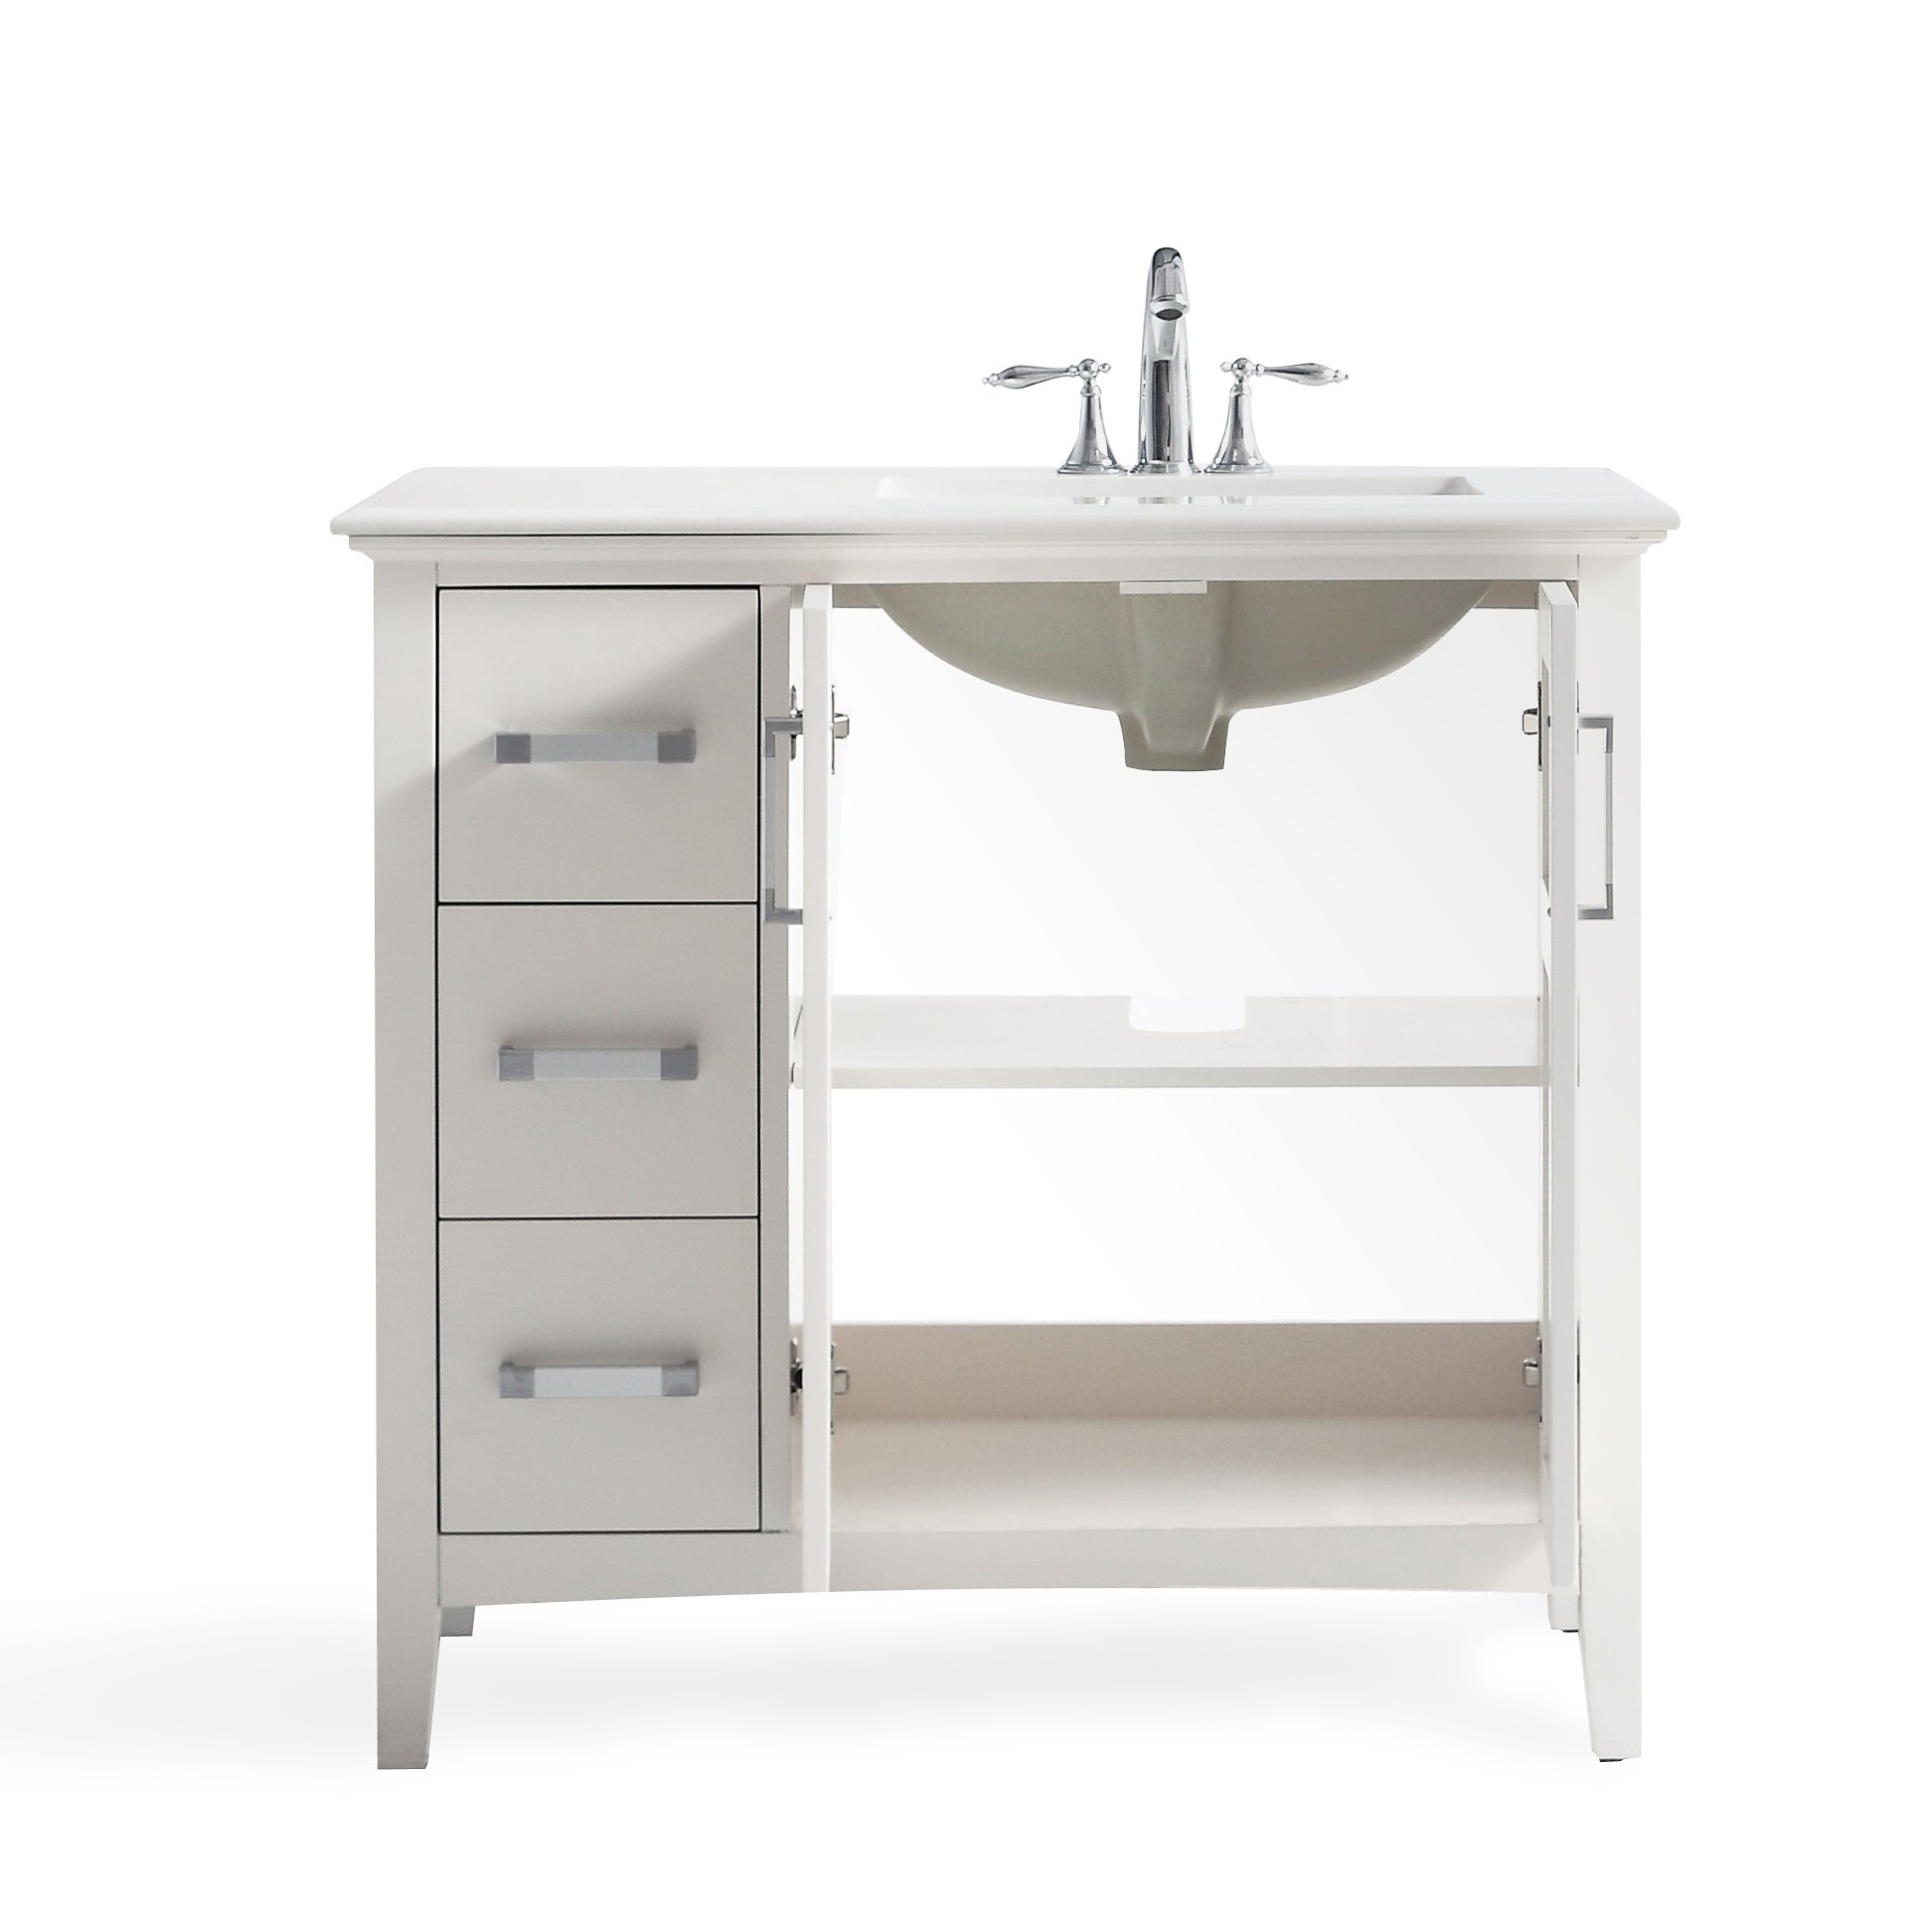 Wyndenhall M 36 Inch Left Offset Bath Vanity In White With Quartz Marble Top On Free Shipping Today 14030630